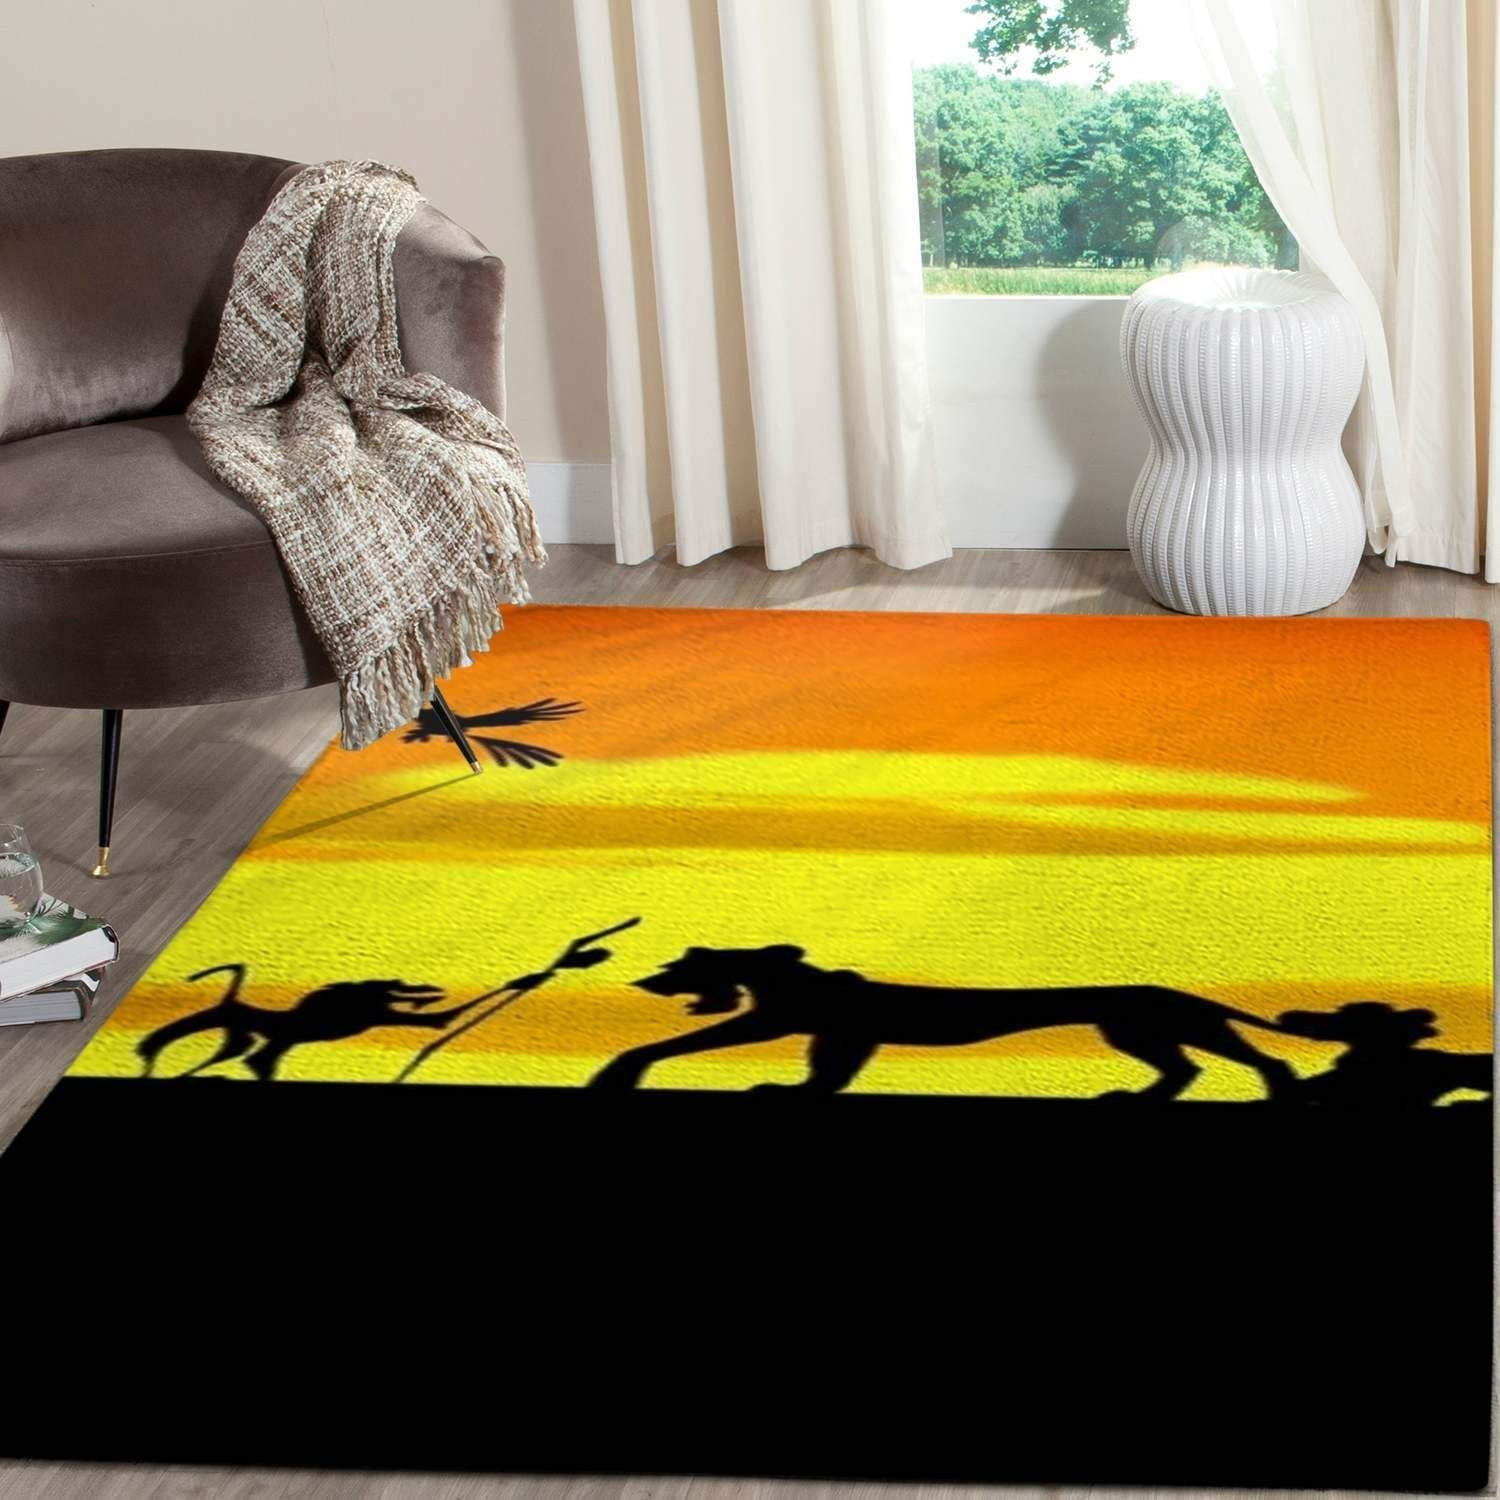 The Lion King Area Rugs Living Room Carpet Christmas Gift Floor Decor RCDD81F34952